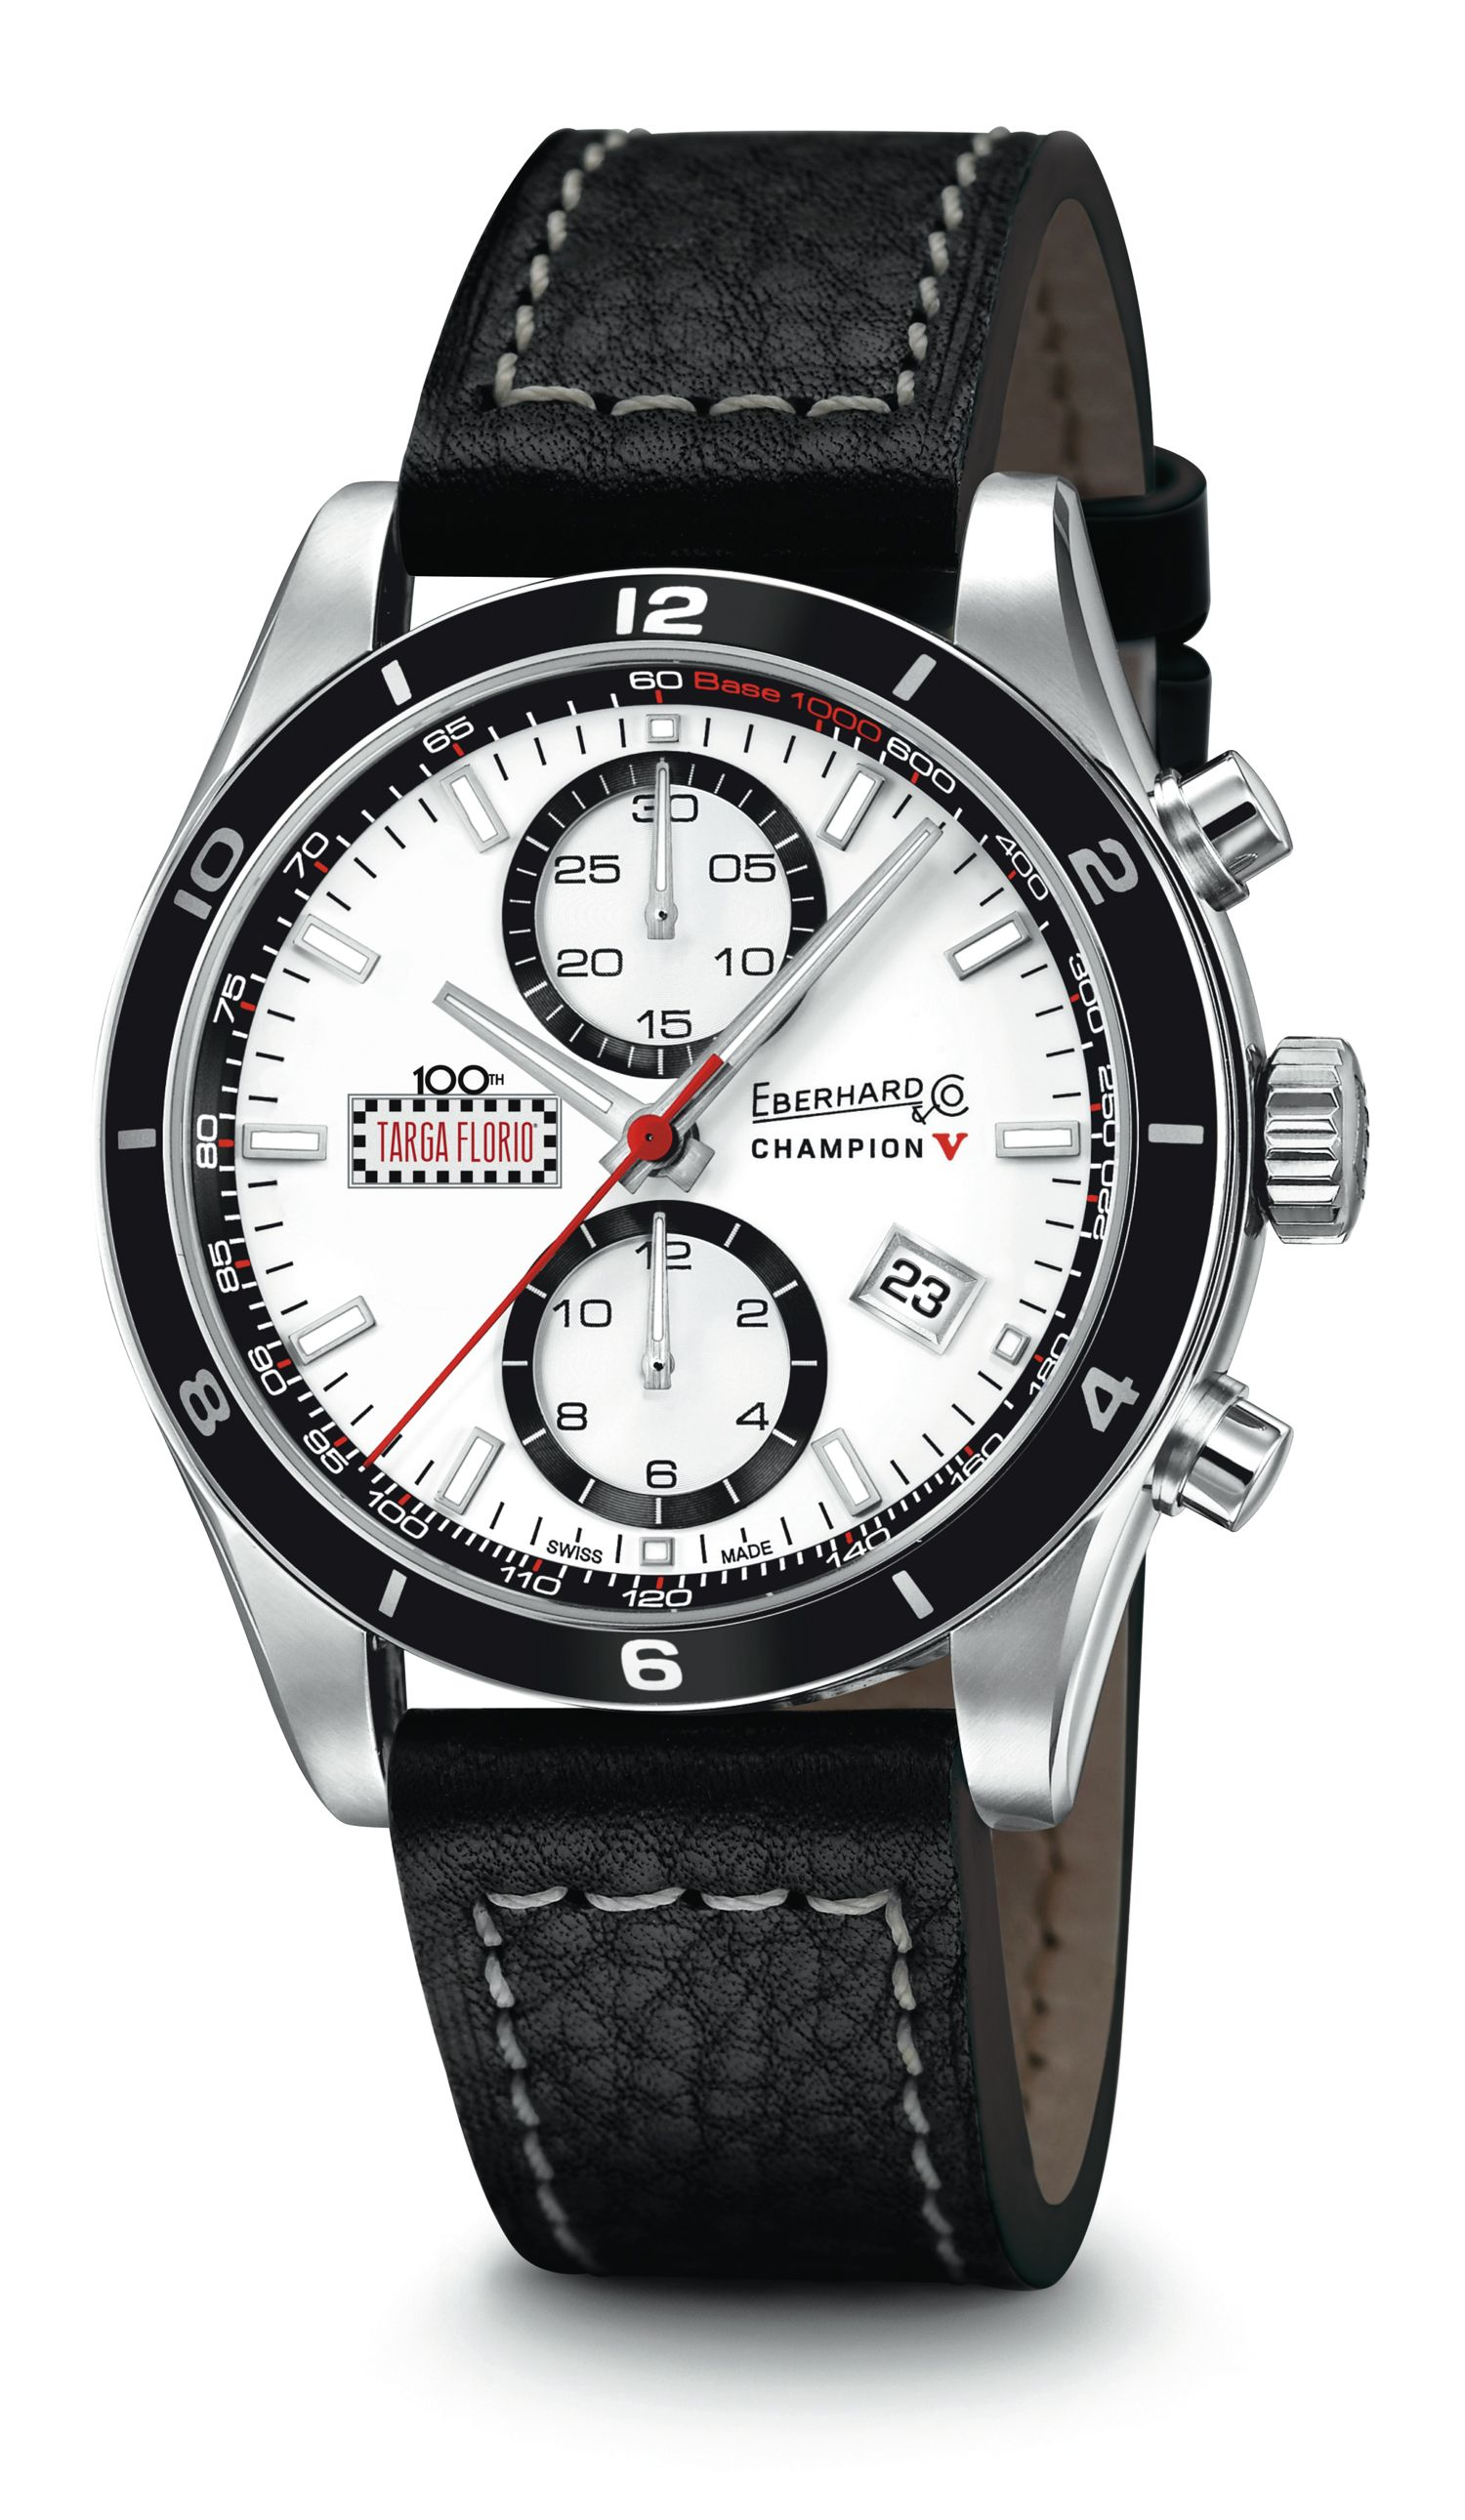 auction auctions geneva cnn champion in index luxury invest to the watches watch style epic article may chronographs top